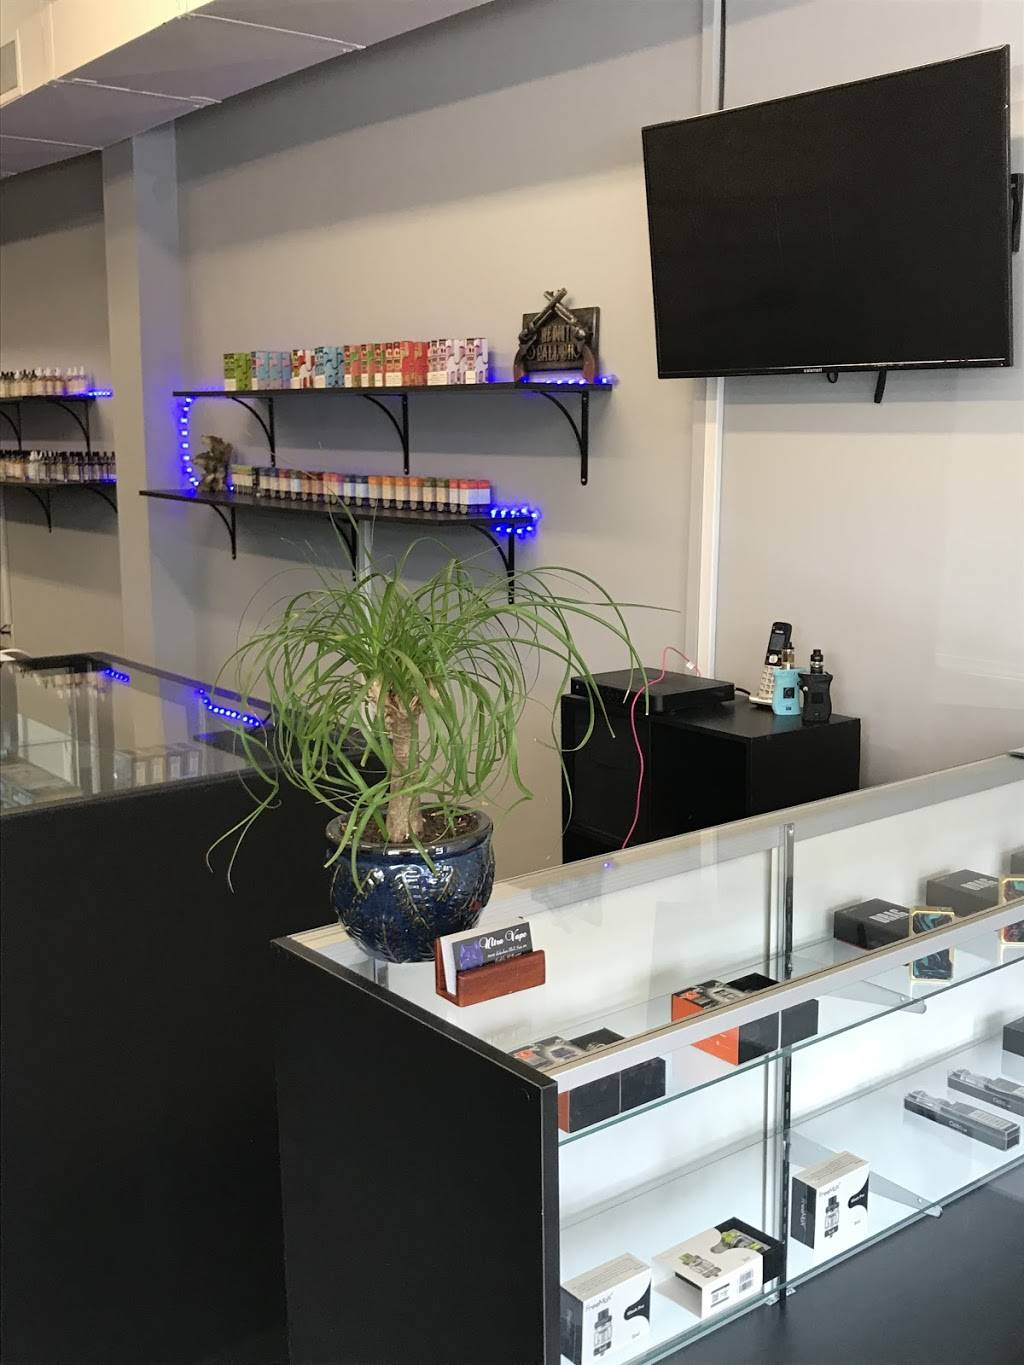 Ultra Vape - store  | Photo 4 of 4 | Address: 36081 Lakeshore Blvd, Eastlake, OH 44095, USA | Phone: (440) 525-5503